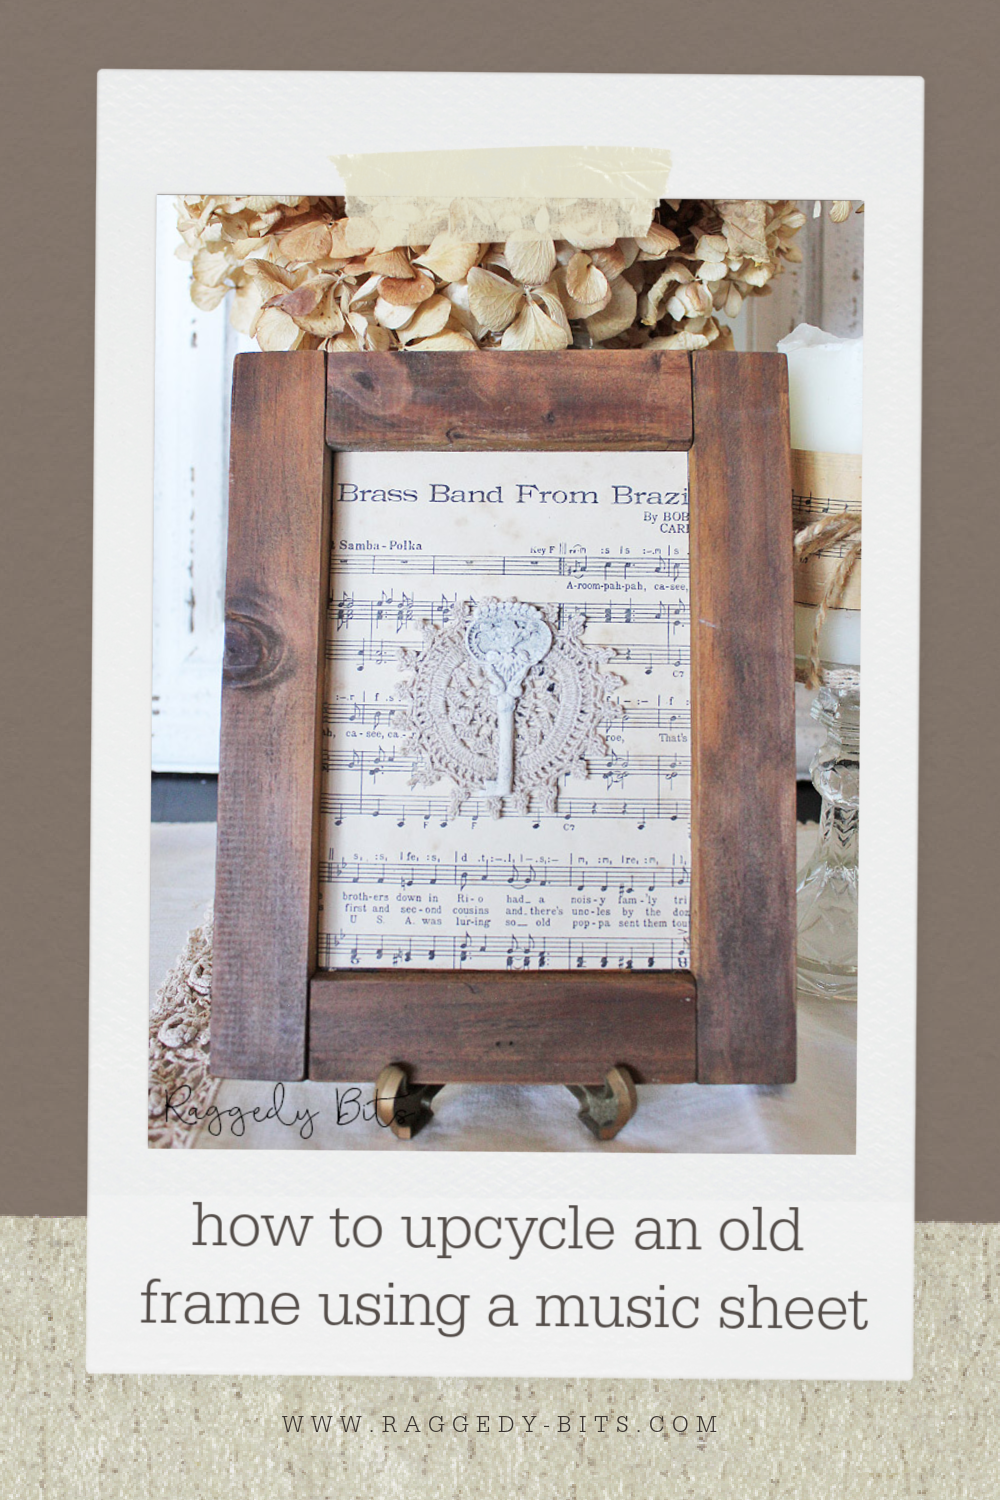 Sharing a fun easy way on how to upcycle an old frame using a music sheet and some air dry clay | www.raggedy-bits.com | #raggedybits #DIY #musicsheet #frame #upcycle #IOD #mould